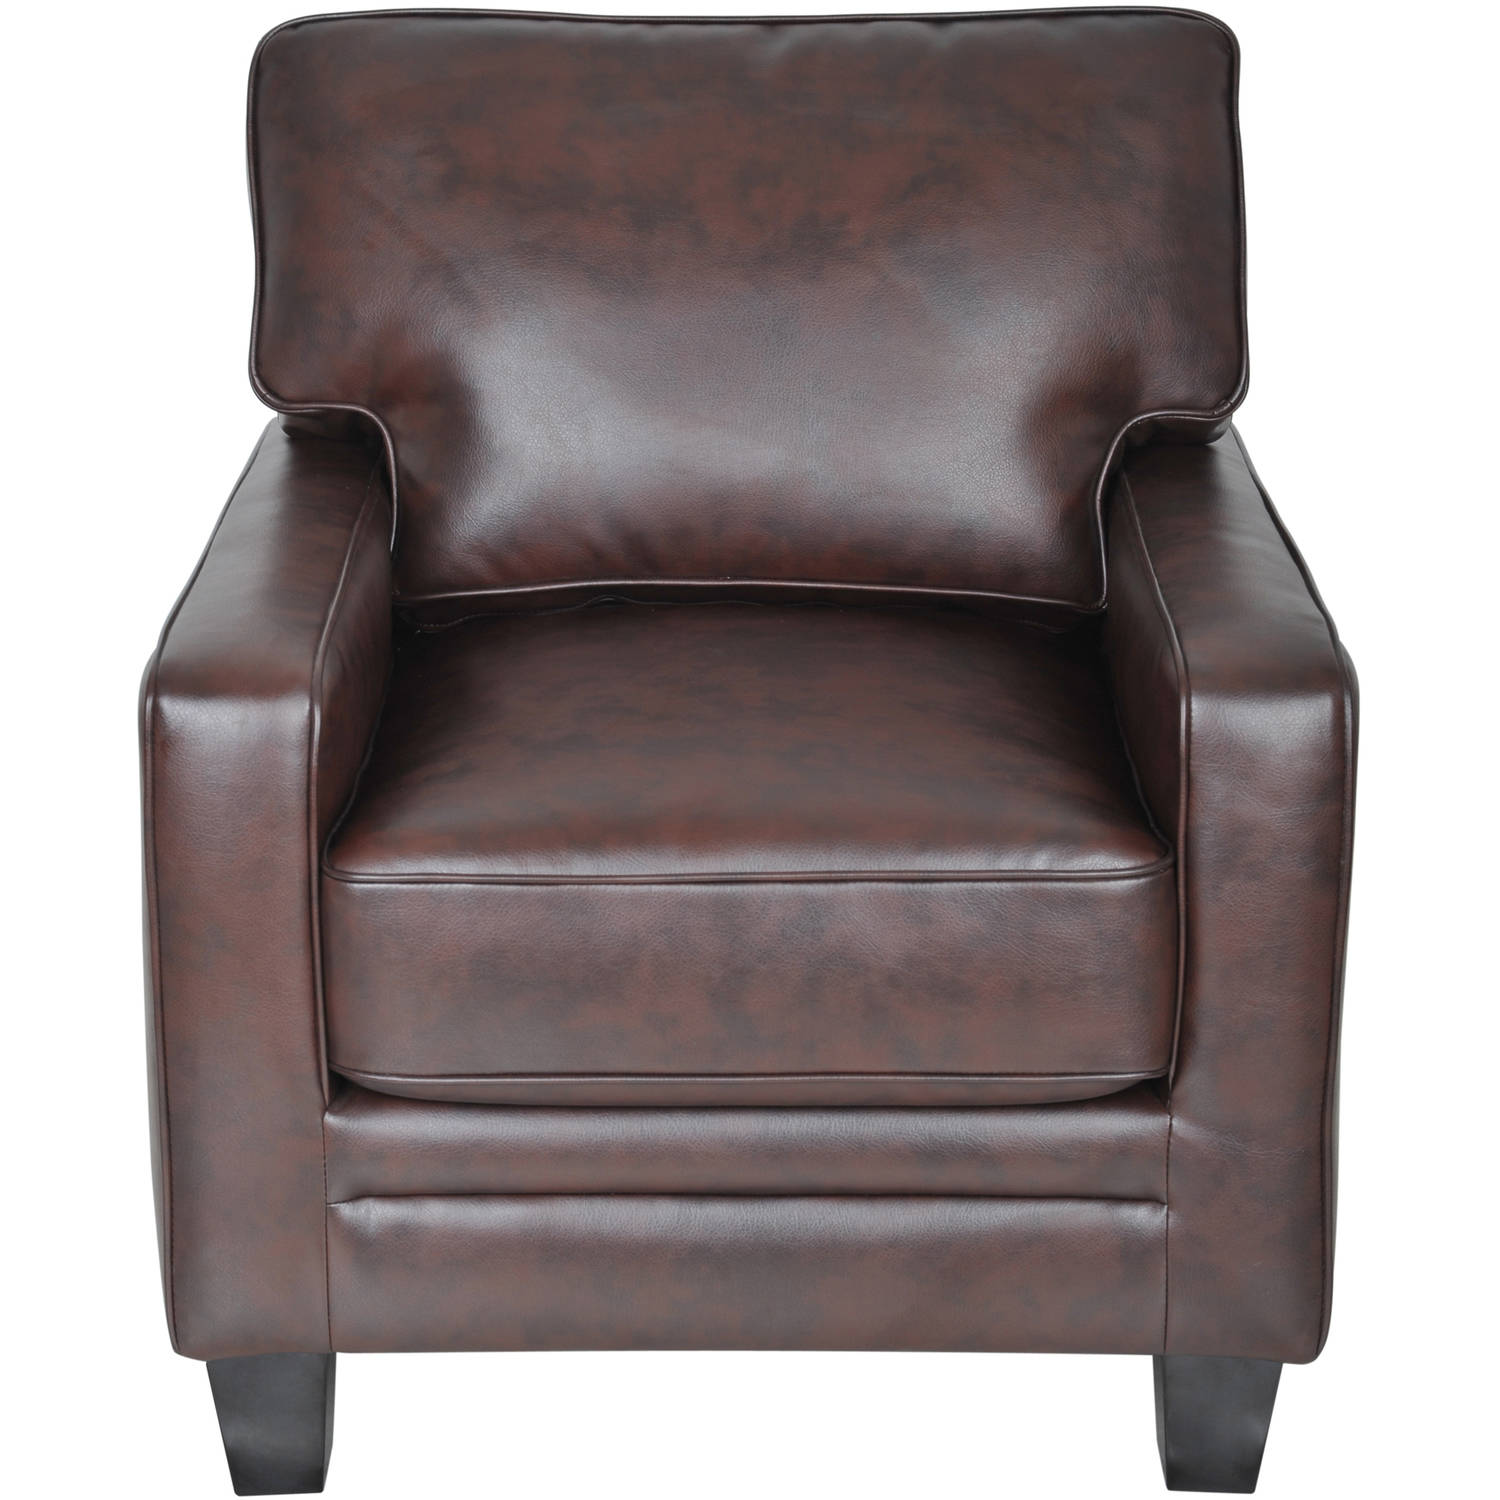 Serta RTA Monaco Collection Accent Chair Brown Bonded Leather